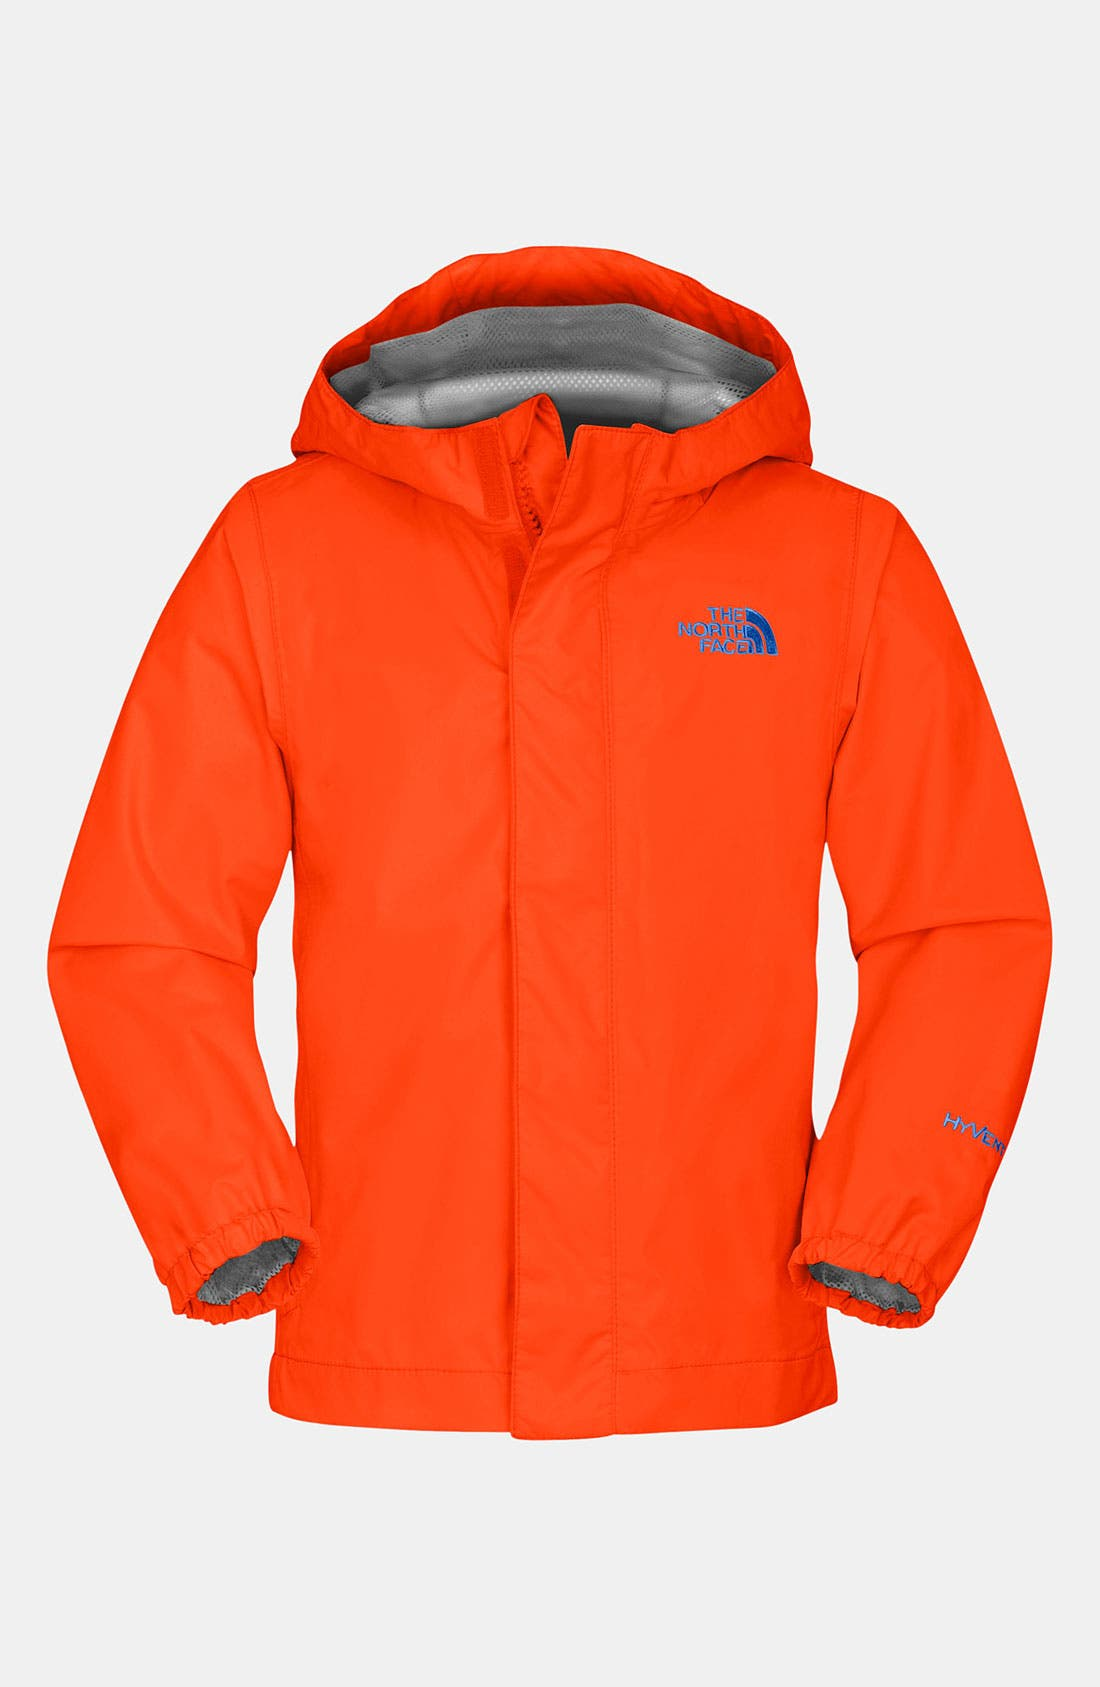 Alternate Image 1 Selected - The North Face 'Tailout' Raincoat (Toddler)